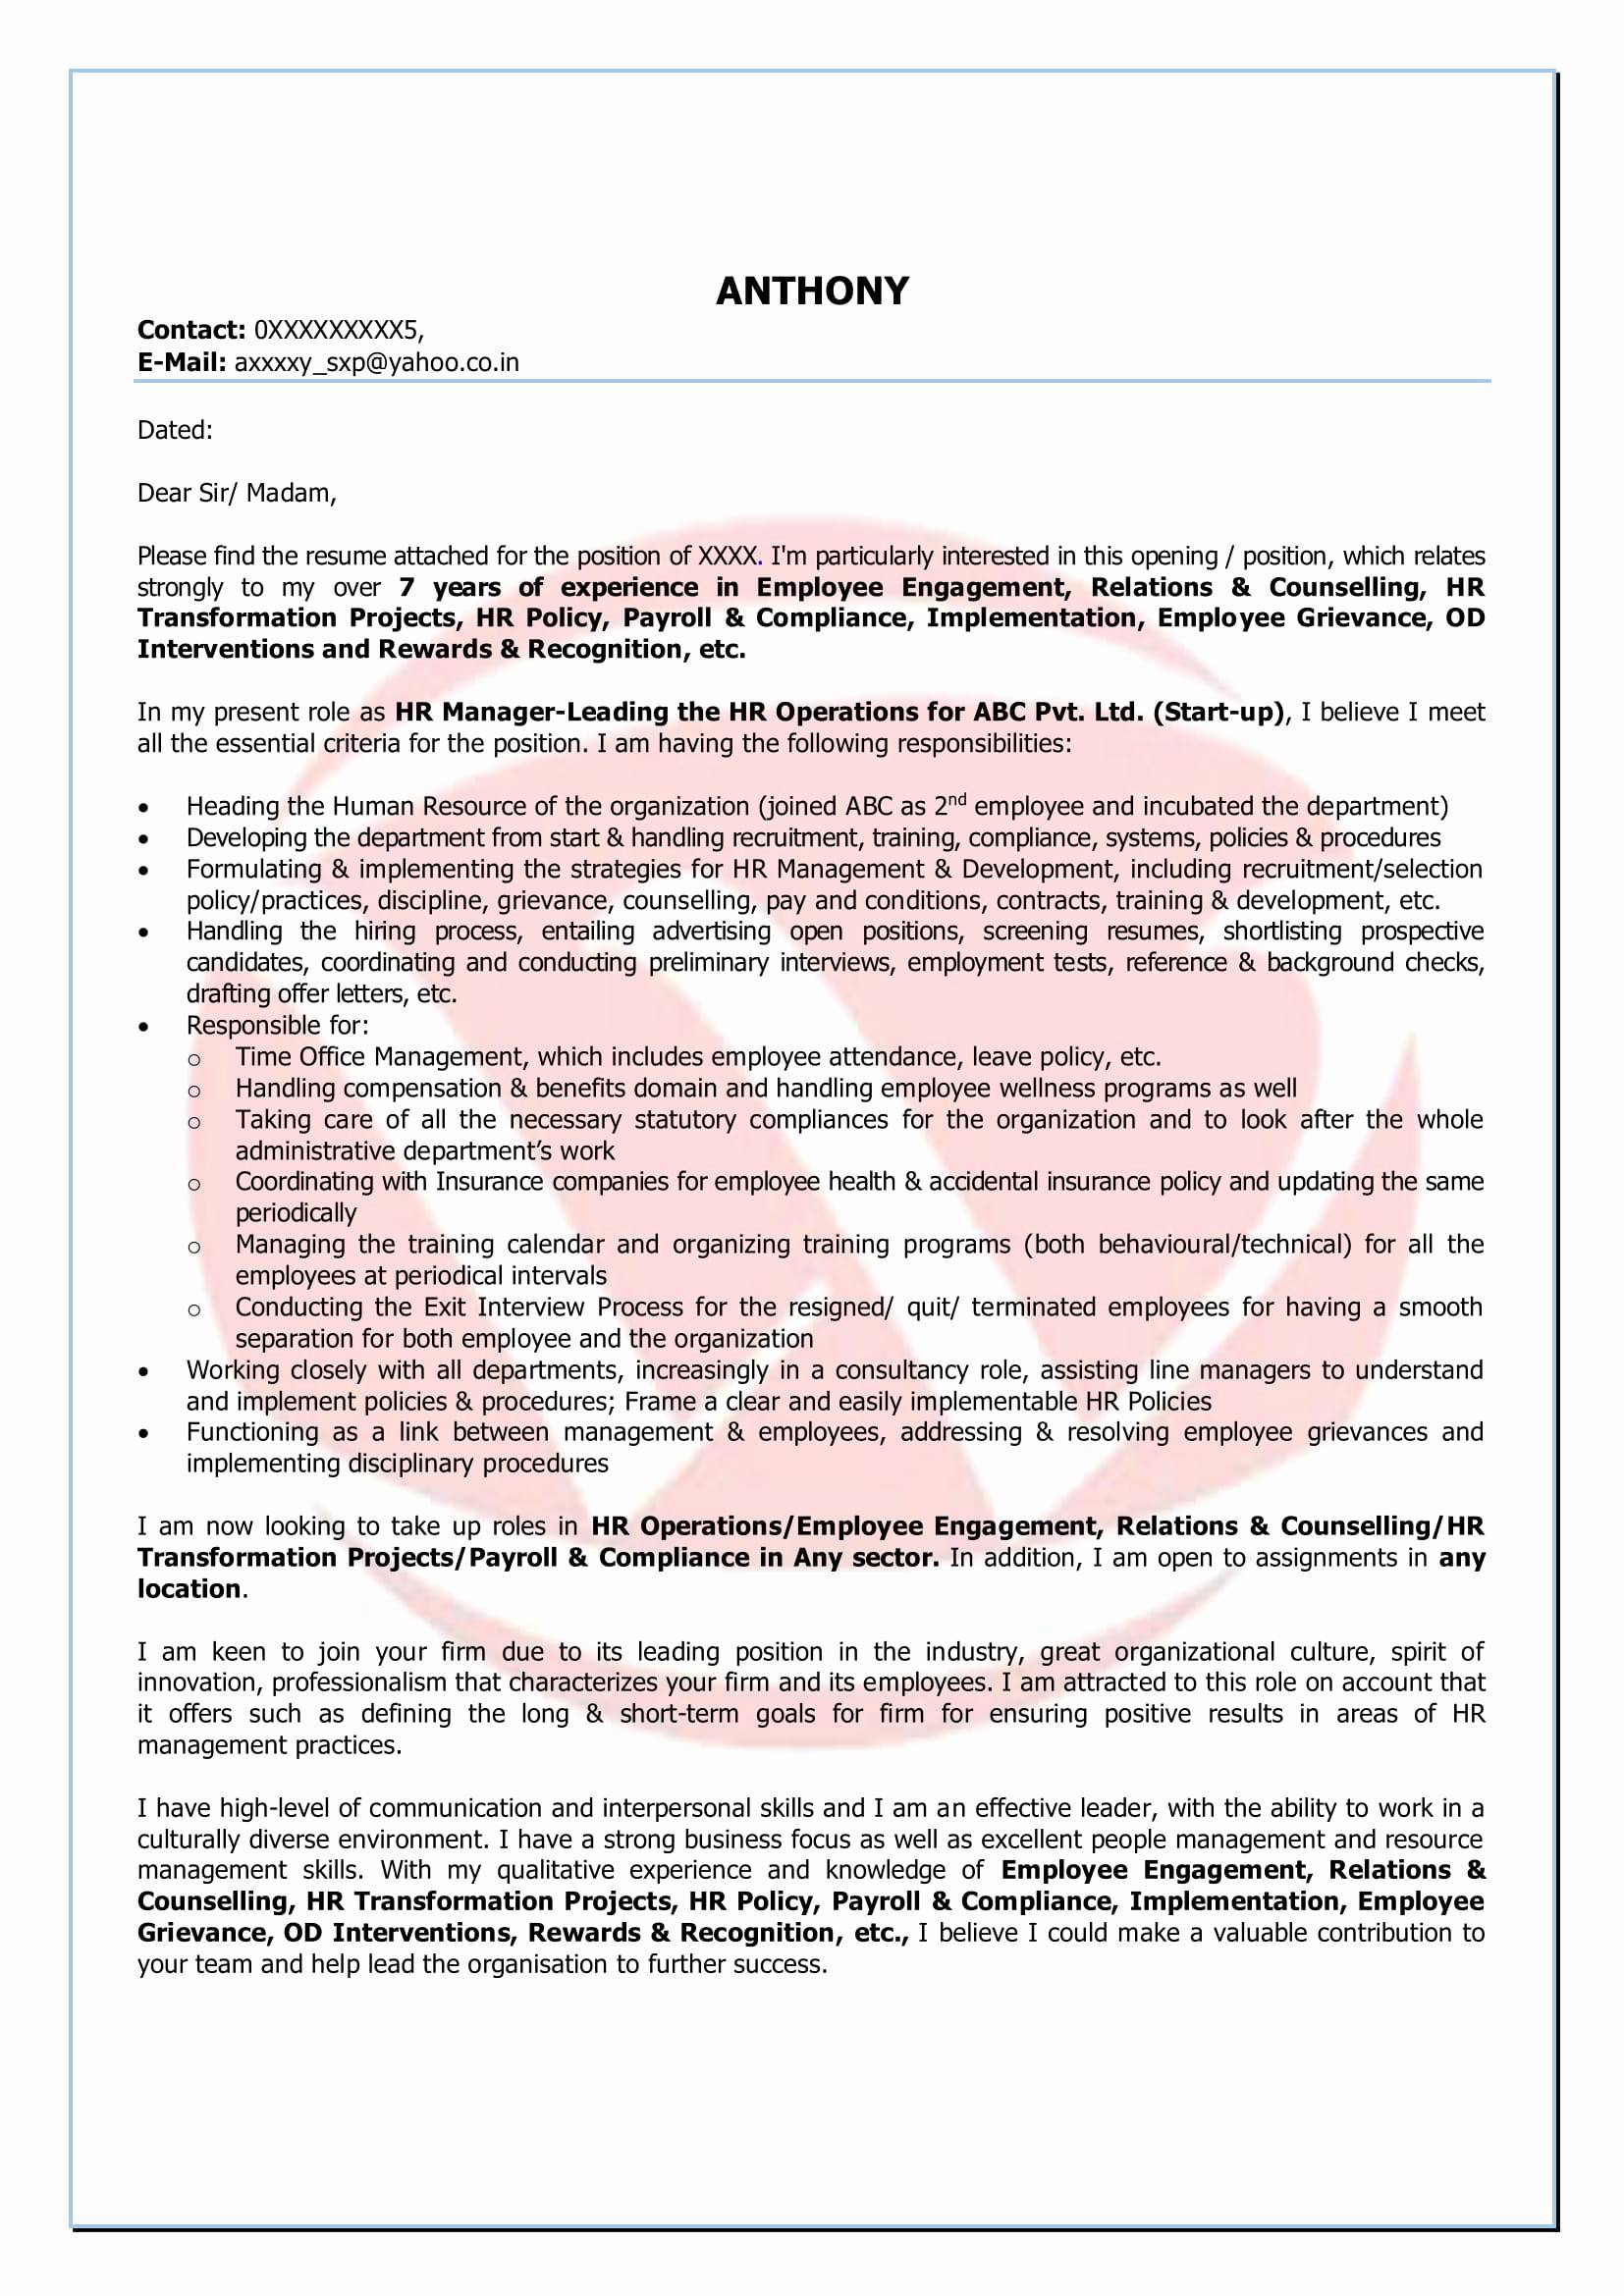 finance cover letter template how to write a finance cover letter luxury hr sample cover